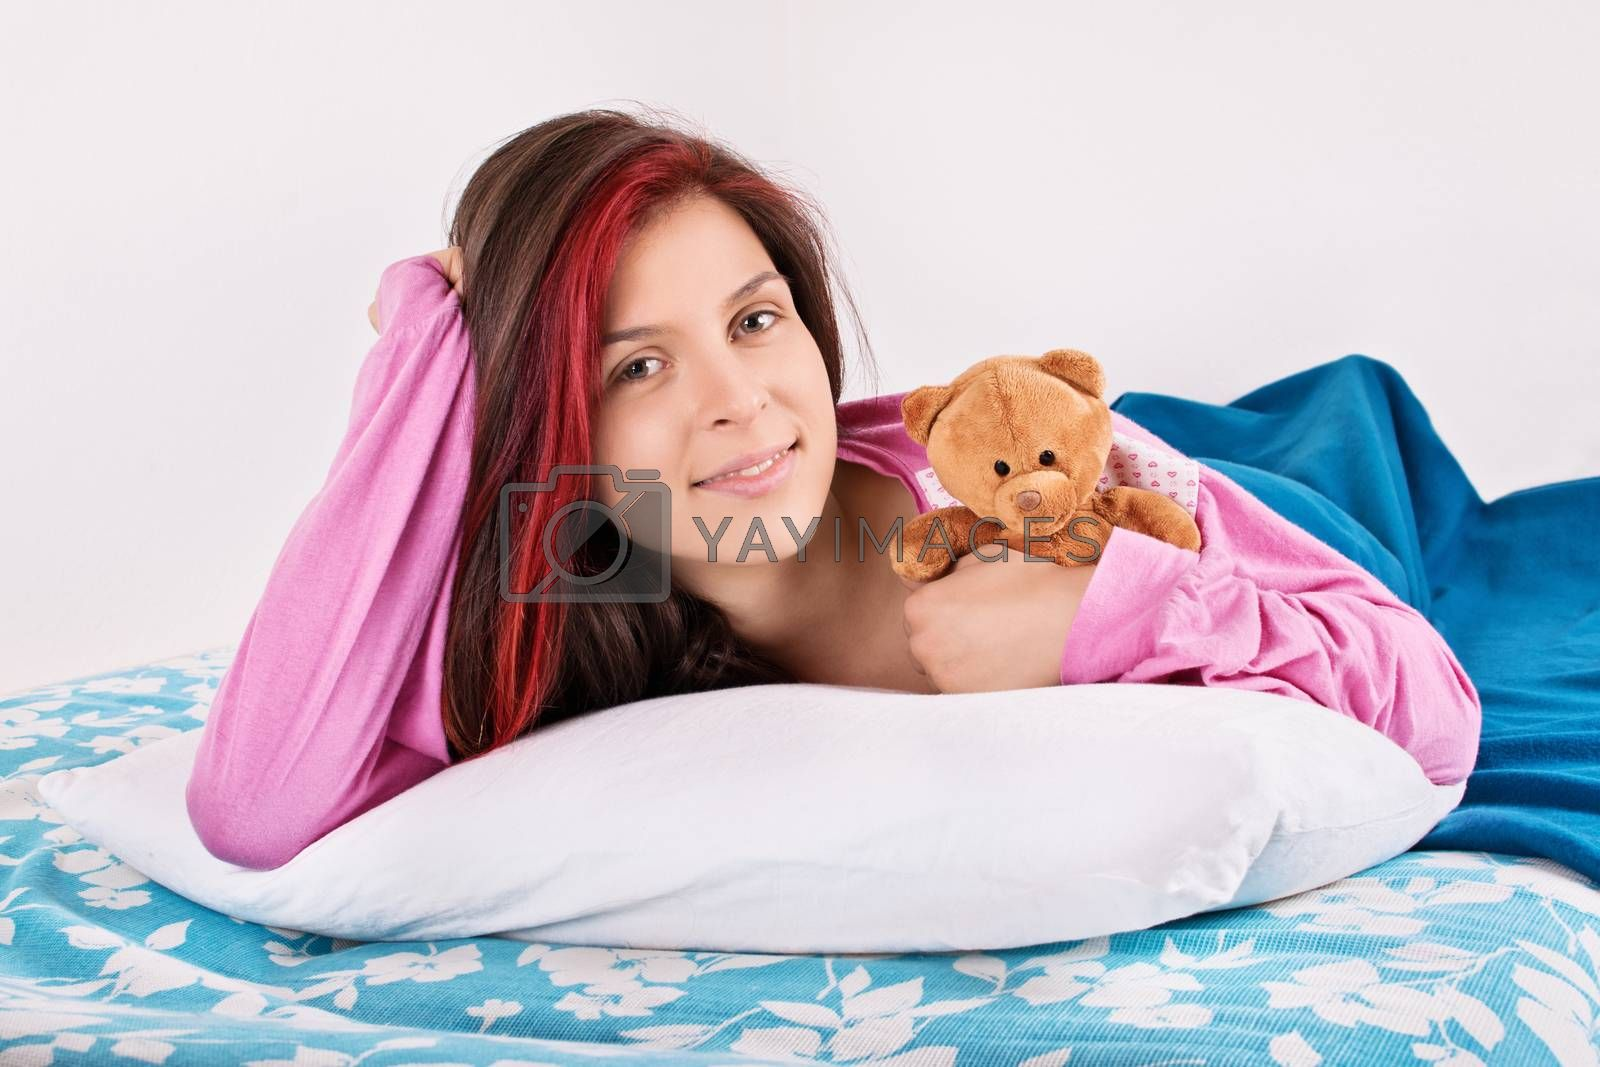 Young girl waking up with her teddy bear by Mendelex